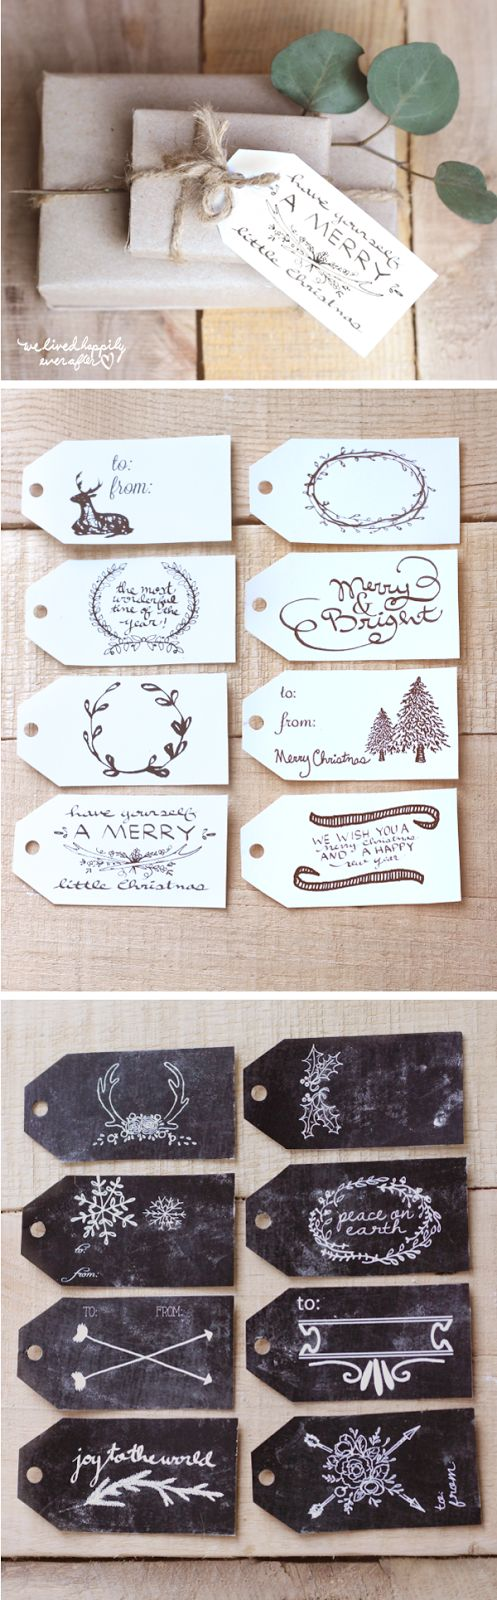 Pretty Variety of Free Printable Christmas Gift Tags | We Lived Happily Ever After - The BEST Christmas and Holiday FREE Printables - Gift Tags - Gift Card Holders - Christmas Greeting Cards and more FREE Downloadable Printables for the Holiday Seasons #christmasprintables #freechristmasprintables #christmascards #christmasgifttags #printablechristmascards #printablechristmasgifttags #christmaspapercrafts